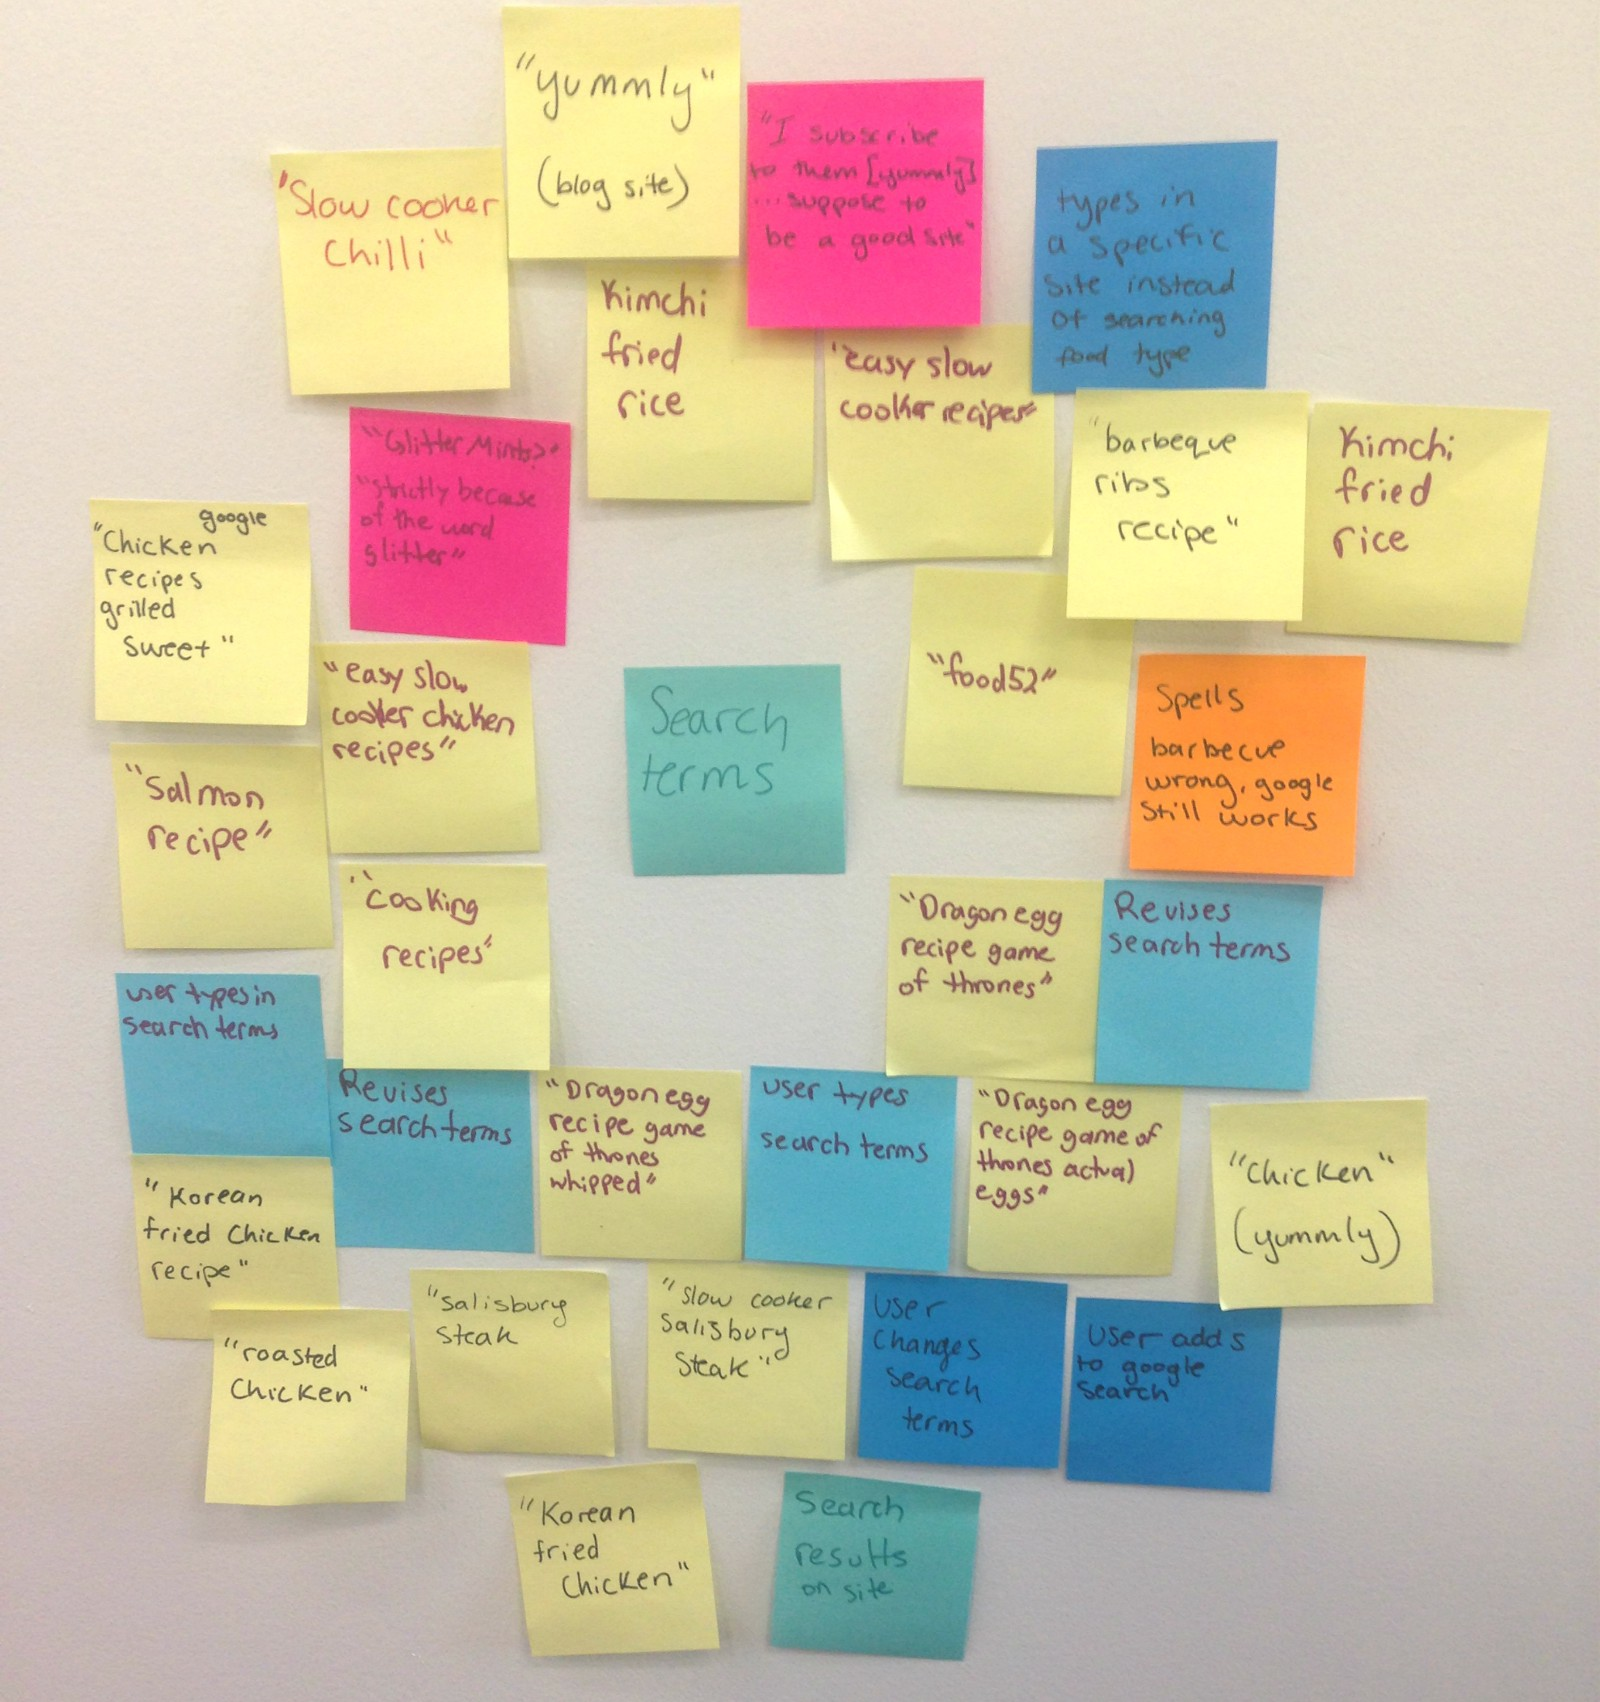 Affinity diagrams tips and tricks learning ux medium our users search terms pooptronica Images